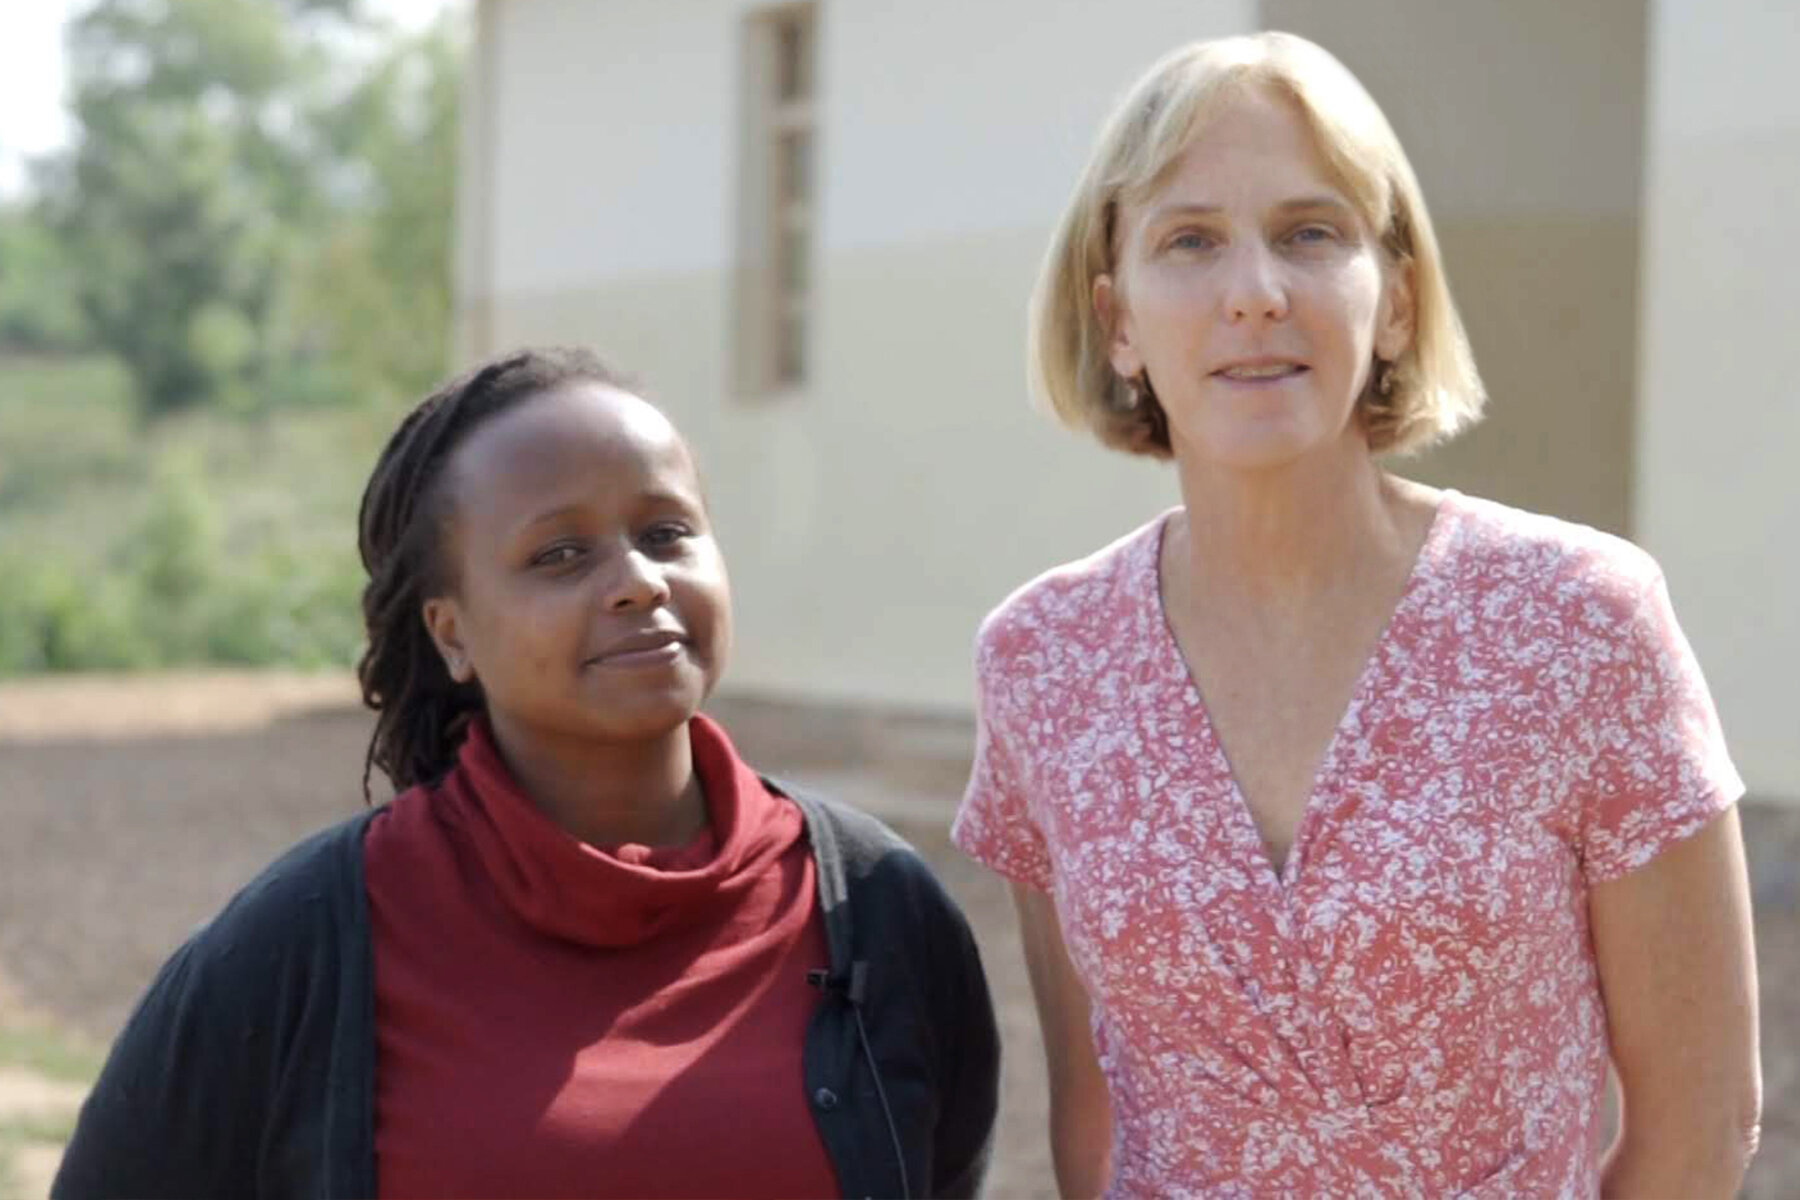 We warmly welcome Clare Korir as Educaton Program Manager. Clare hails from Kenya and brings invaluable experience, having graduated from Barnard College and taught at African Leadership Academy and African Leadership University. Clare joins Liz Gips, the Executive Director of KIA, in bringing the Kigutu International Academy to life.